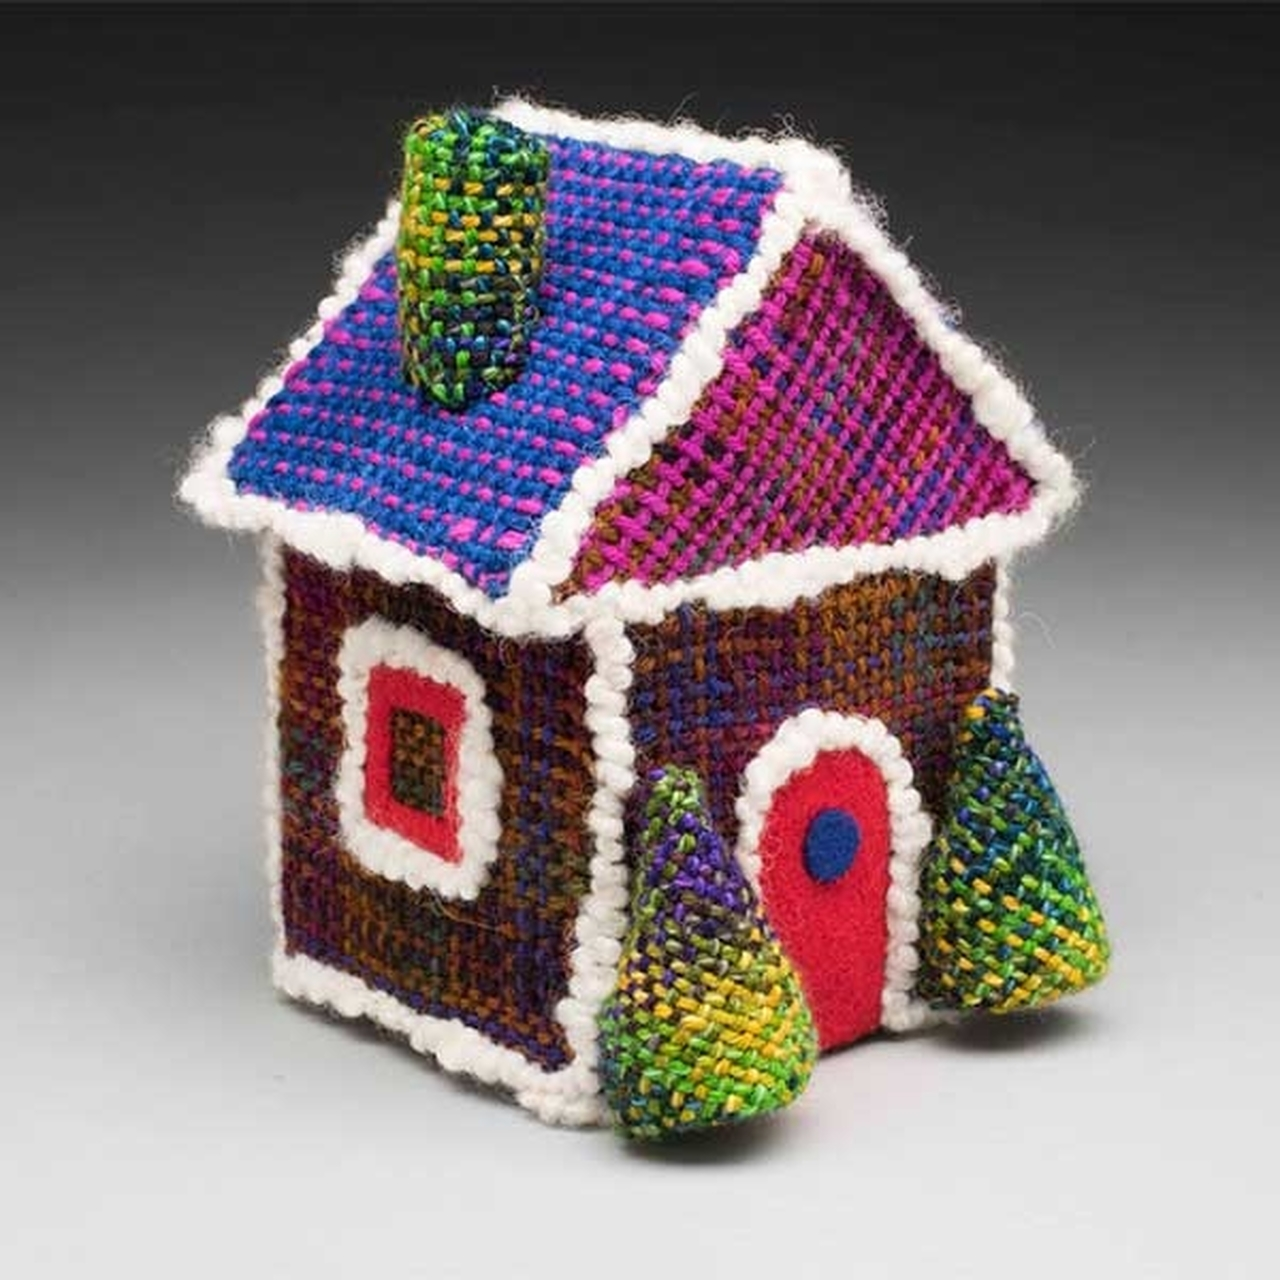 Zoom Loom Swatch Critter Kit - Gingerbread House